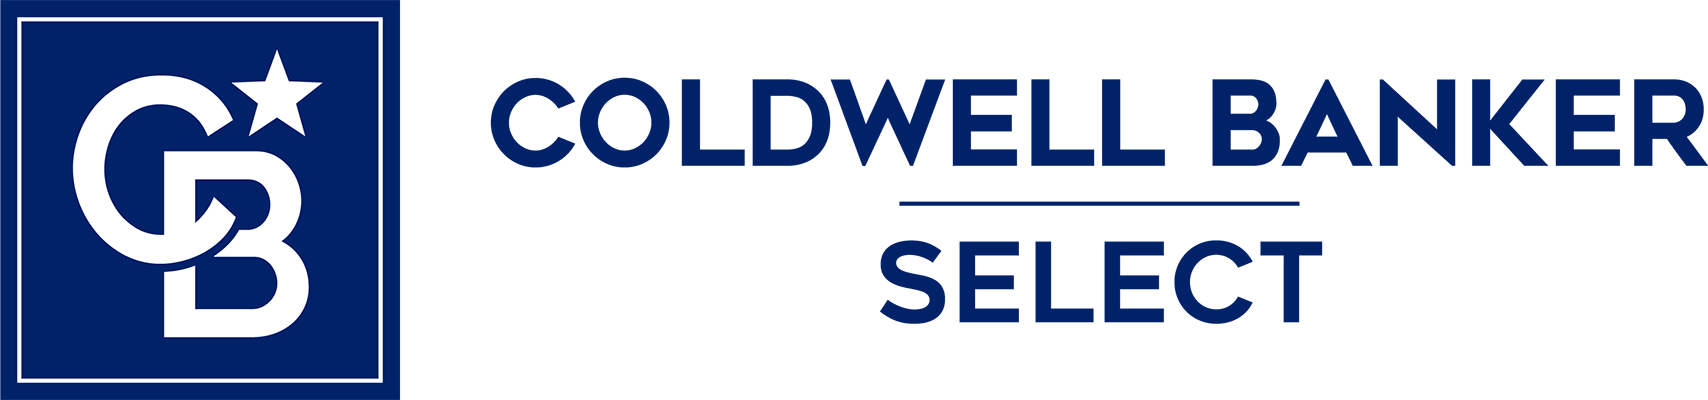 Larry Ahrens - Coldwell Banker Select Logo